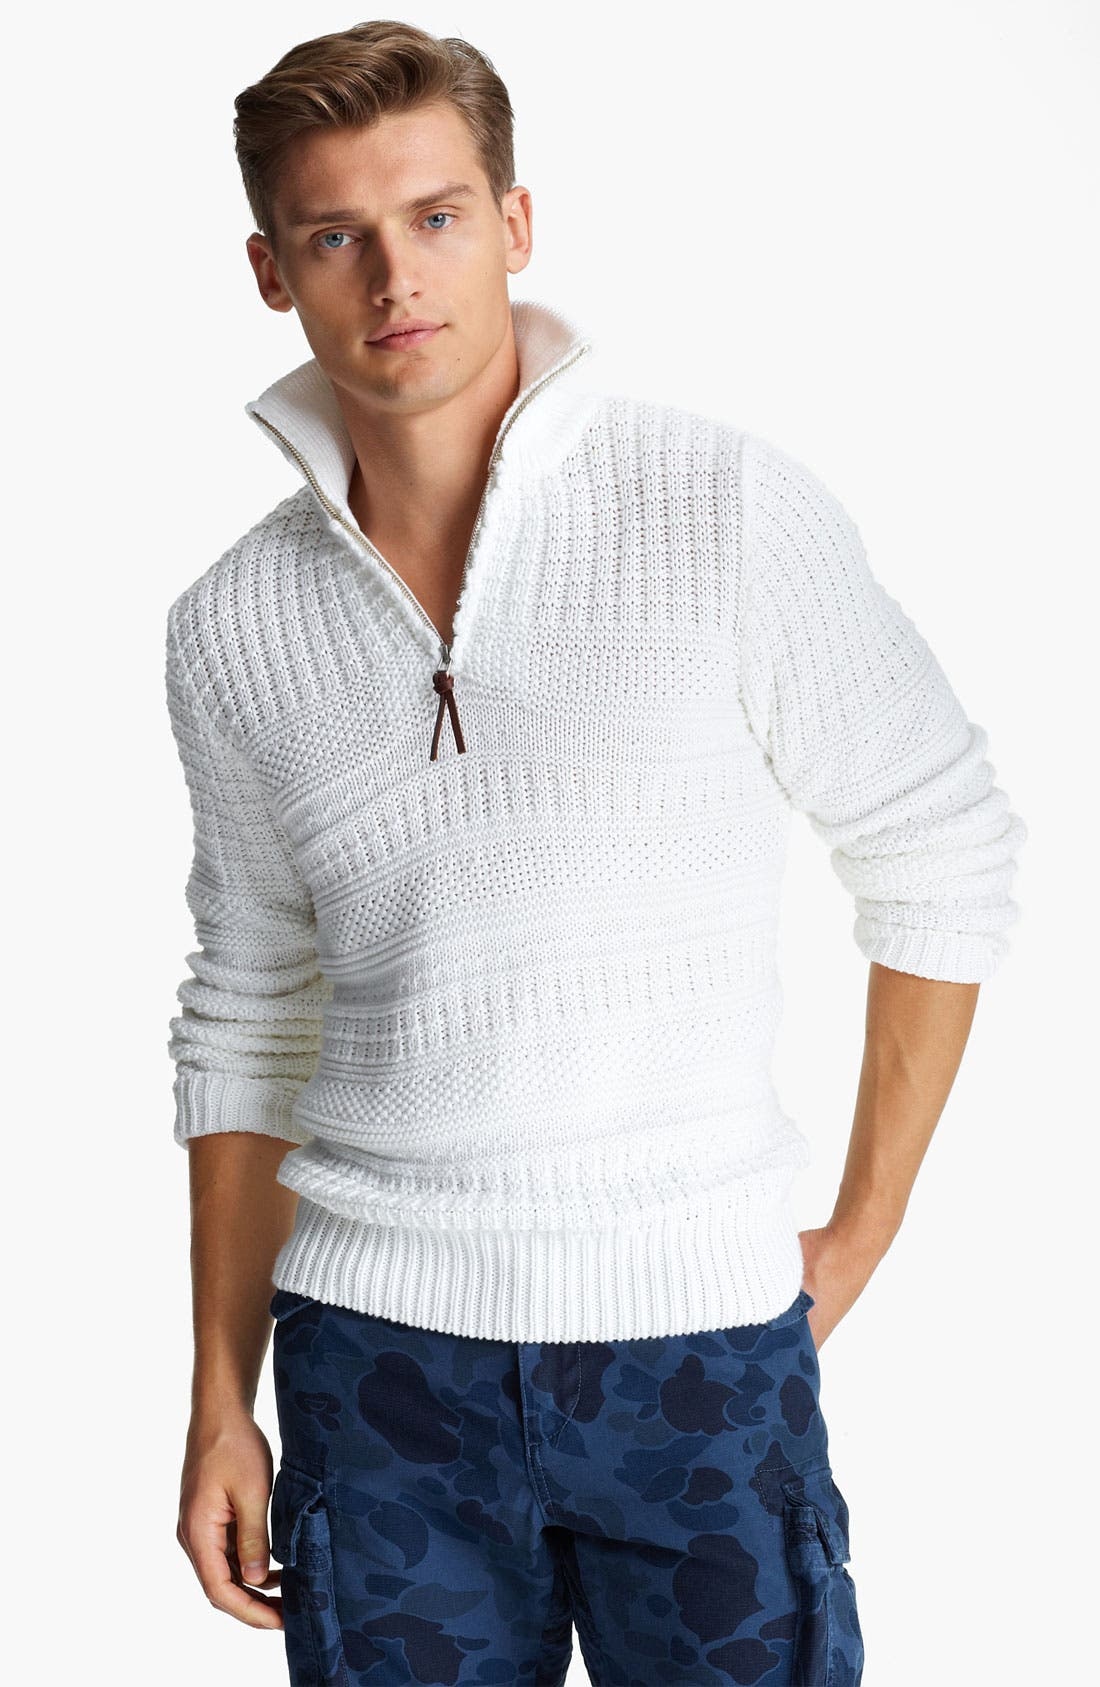 Main Image - Gant by Michael Bastian Quarter Zip Pullover Sweater